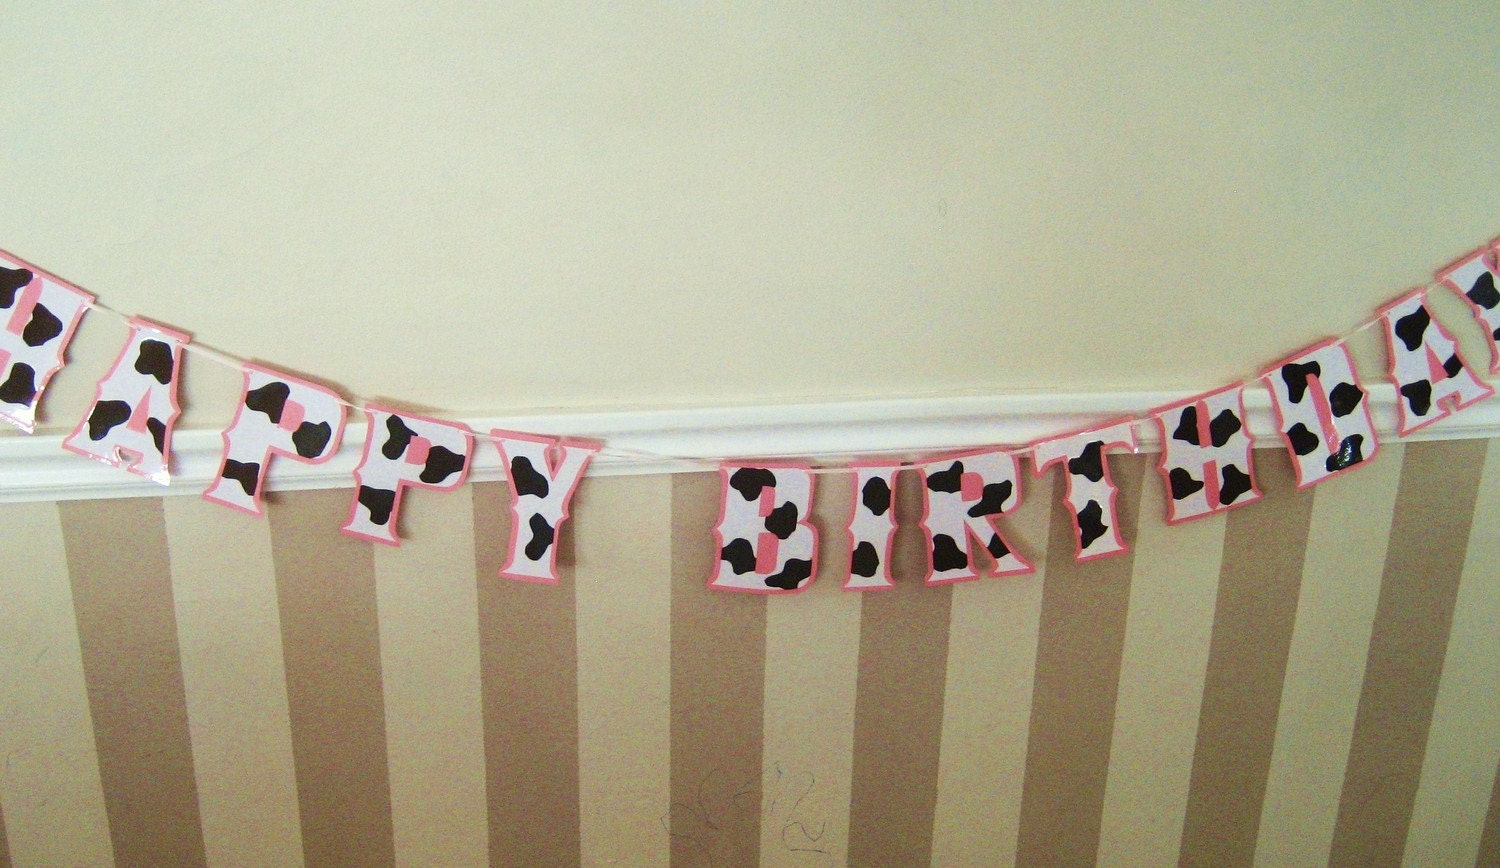 HaPPY BiRTHDAY Banner - Chocolate Brown CoW PRiNT on Baby PiNK